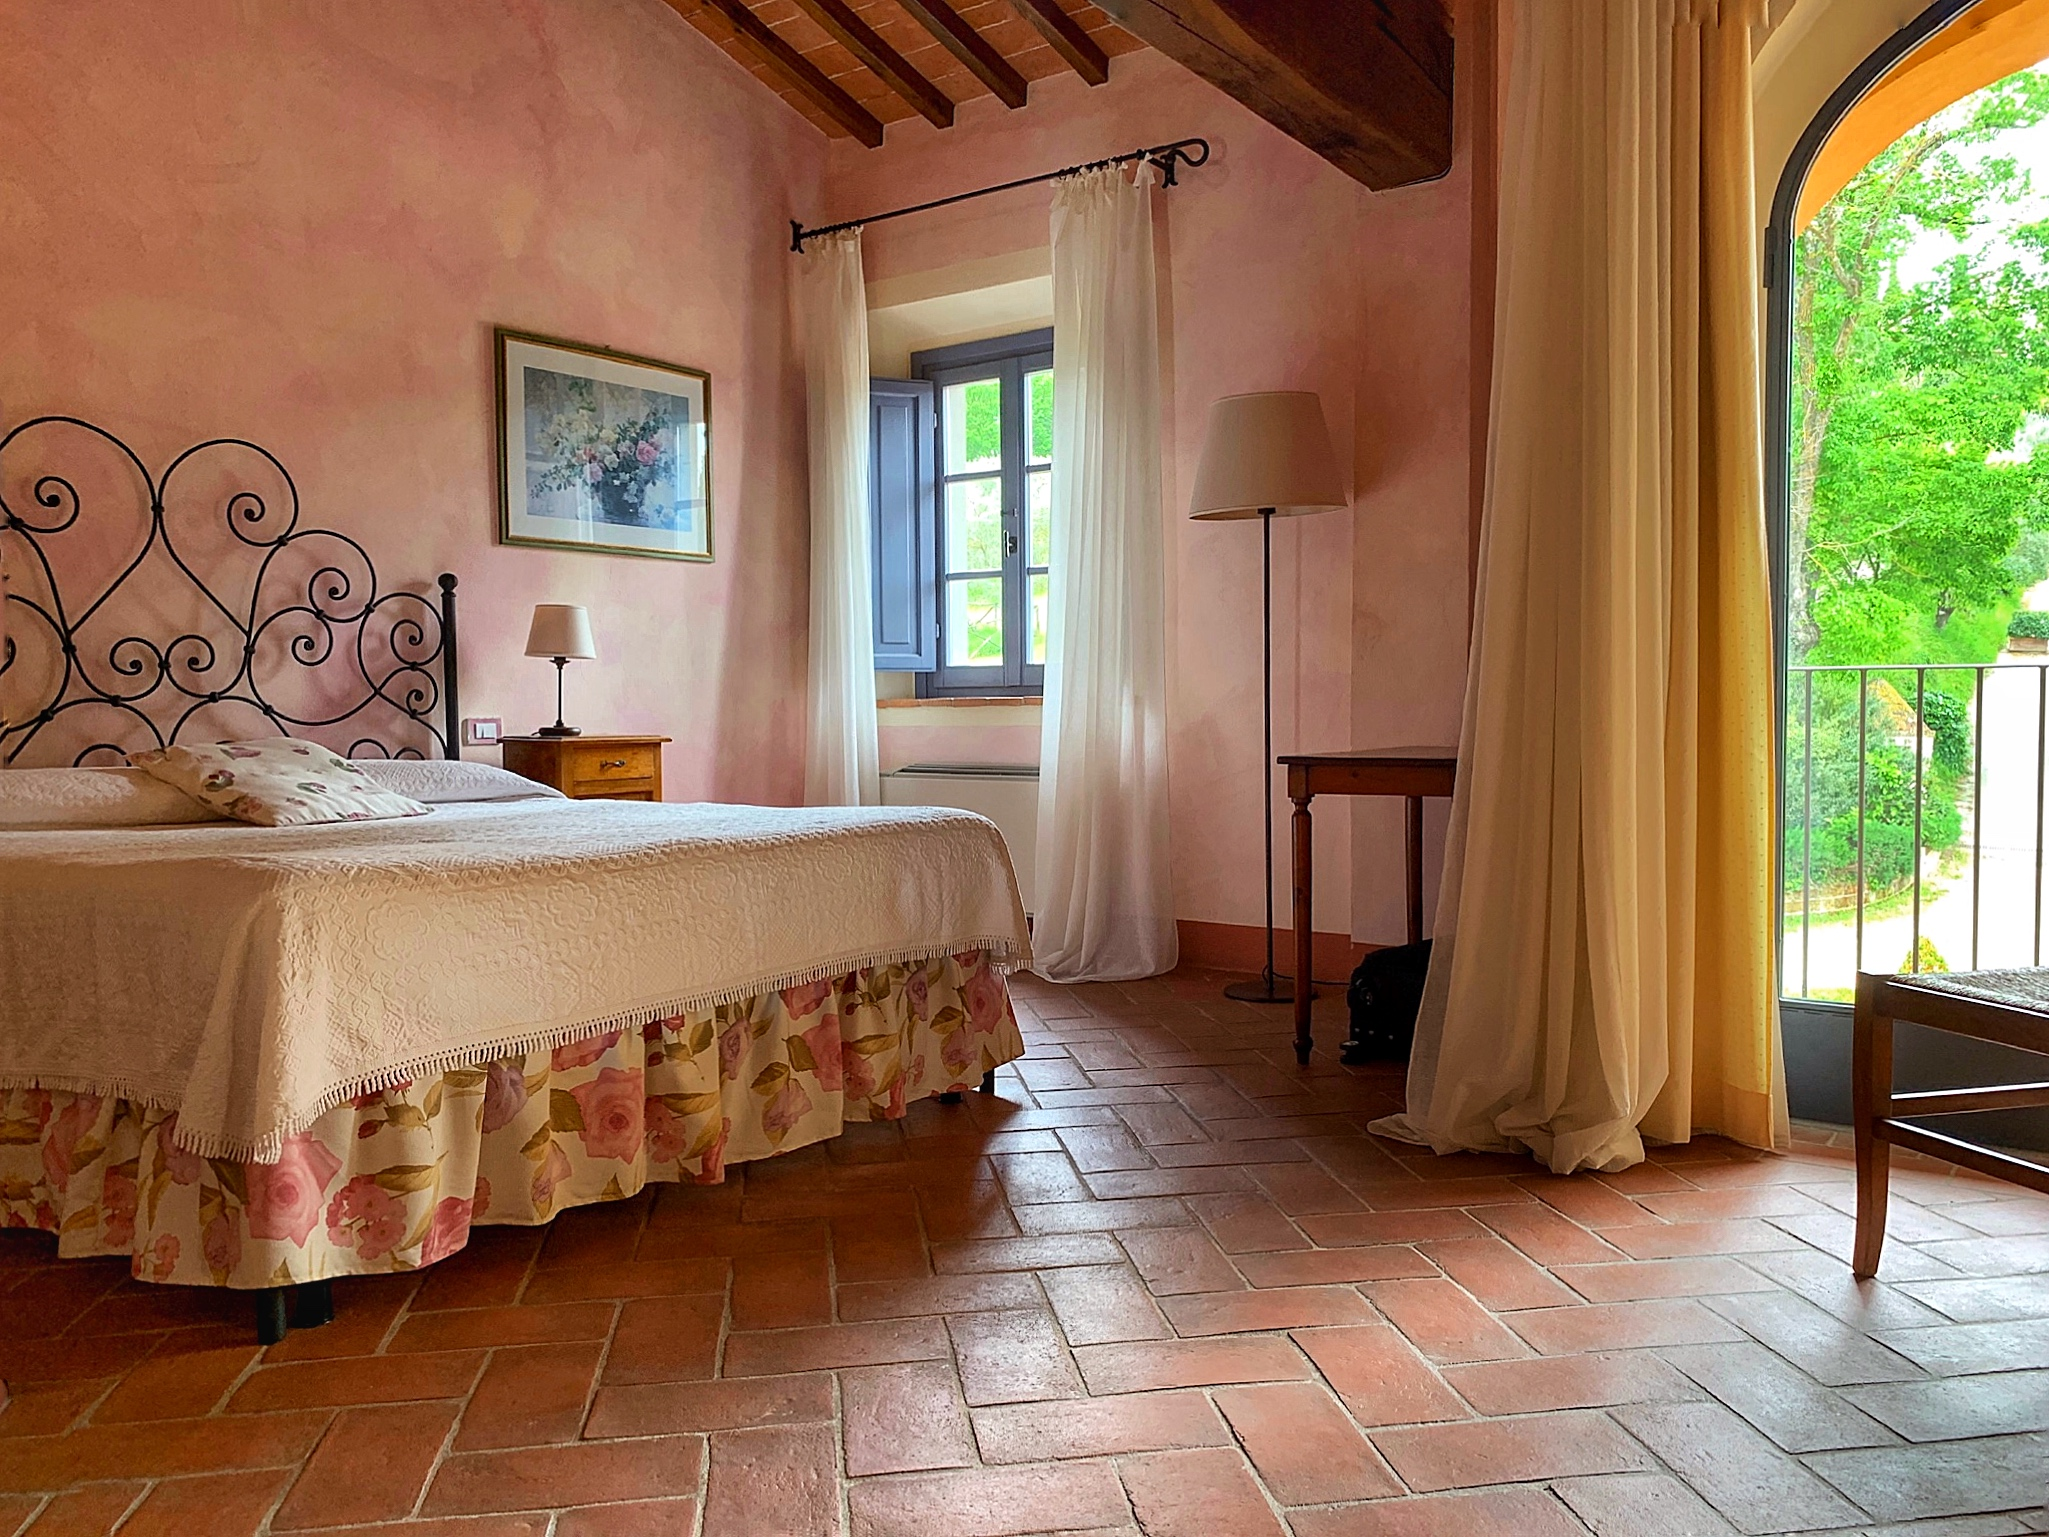 Tuscany bedroom_